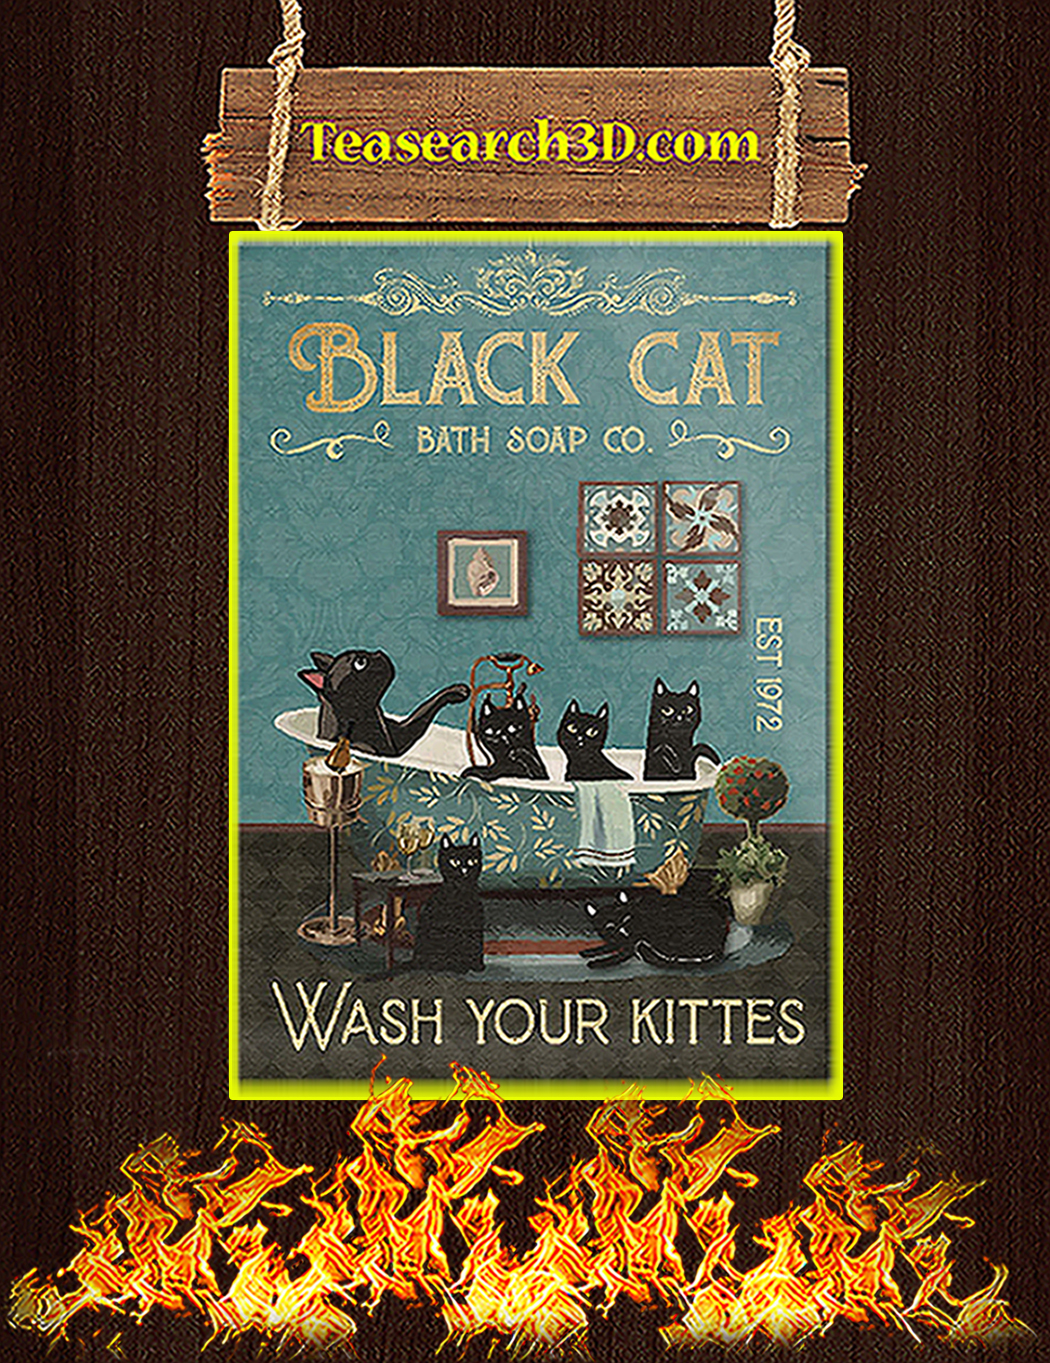 Black cat bath soap co wash your kittes poster A1